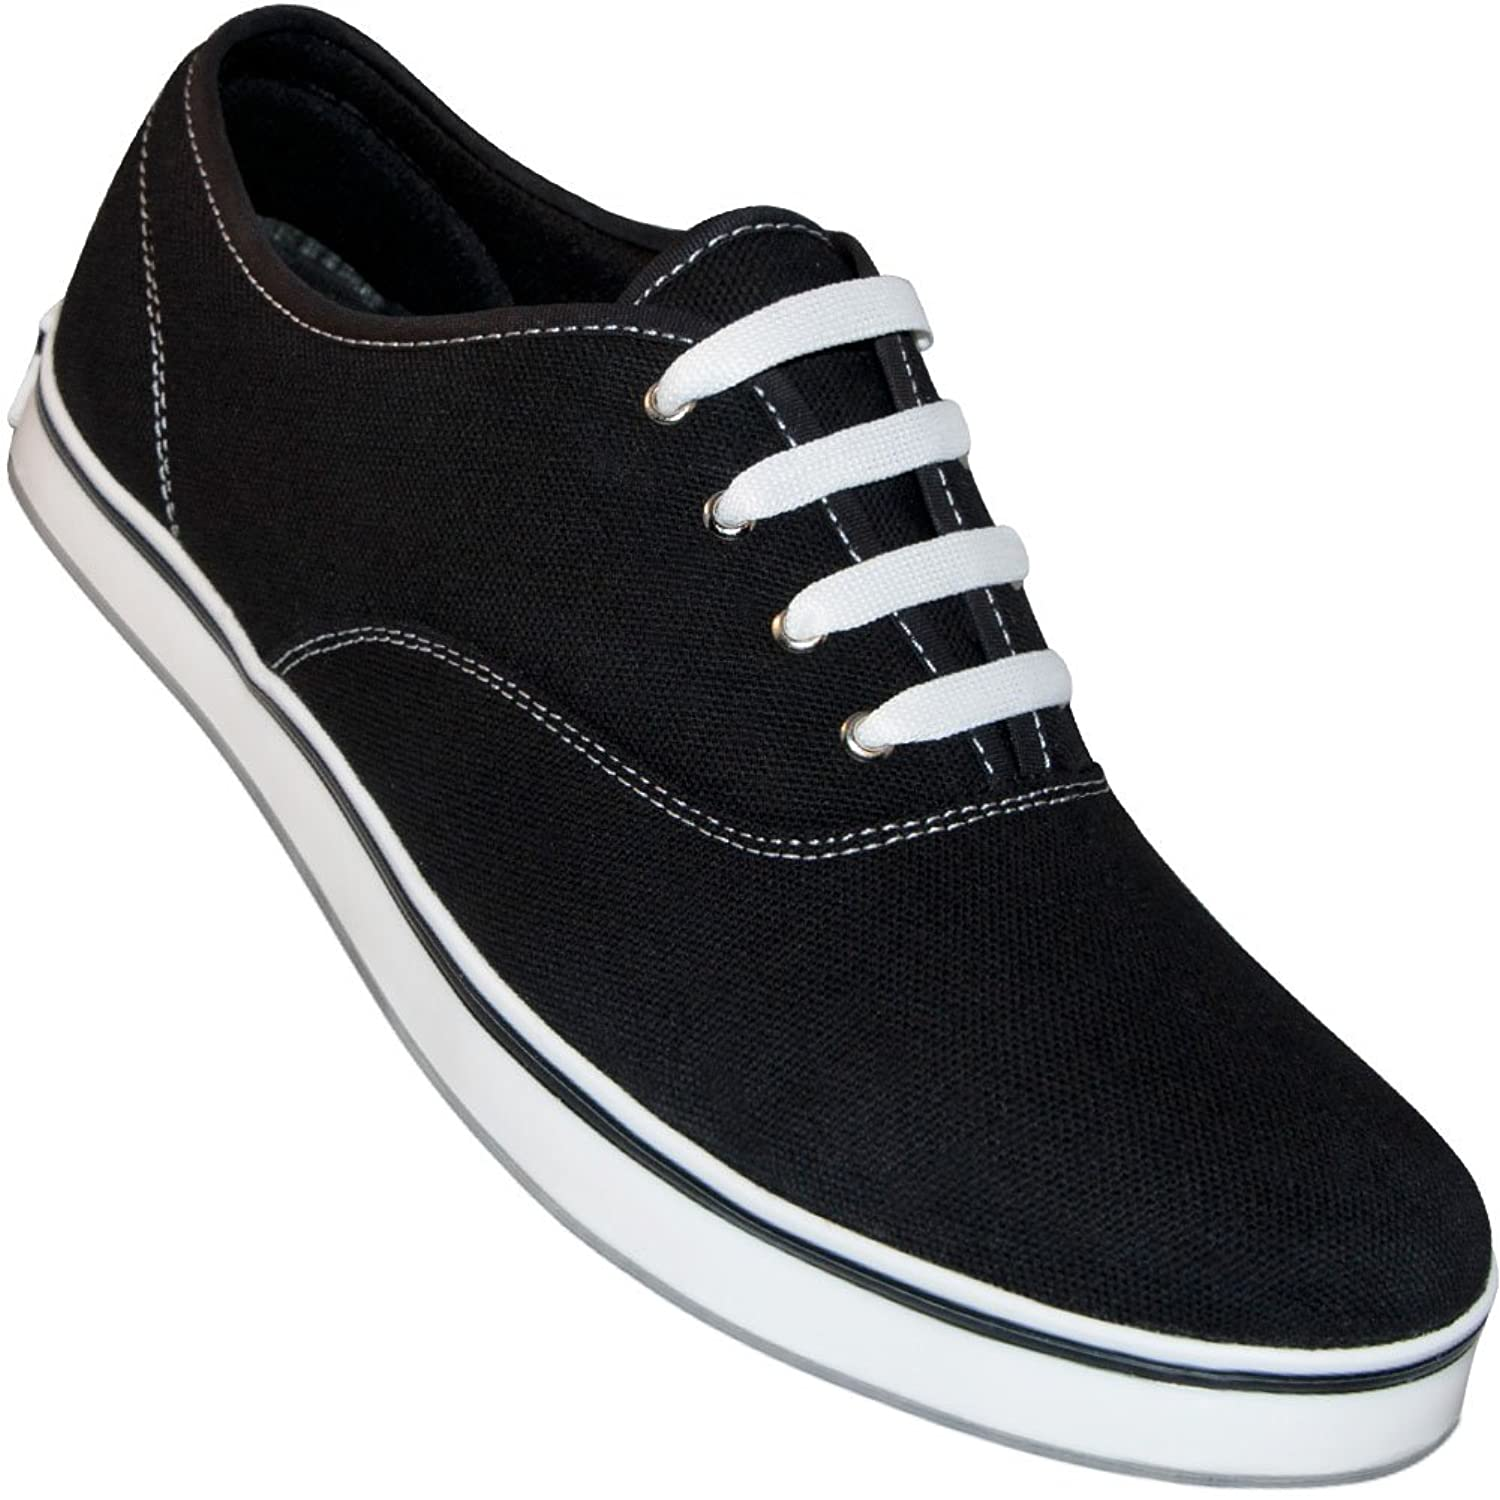 Men's Vintage Style Hats Aris Allen Mens Black Classic Dress Dance Sneaker $48.95 AT vintagedancer.com